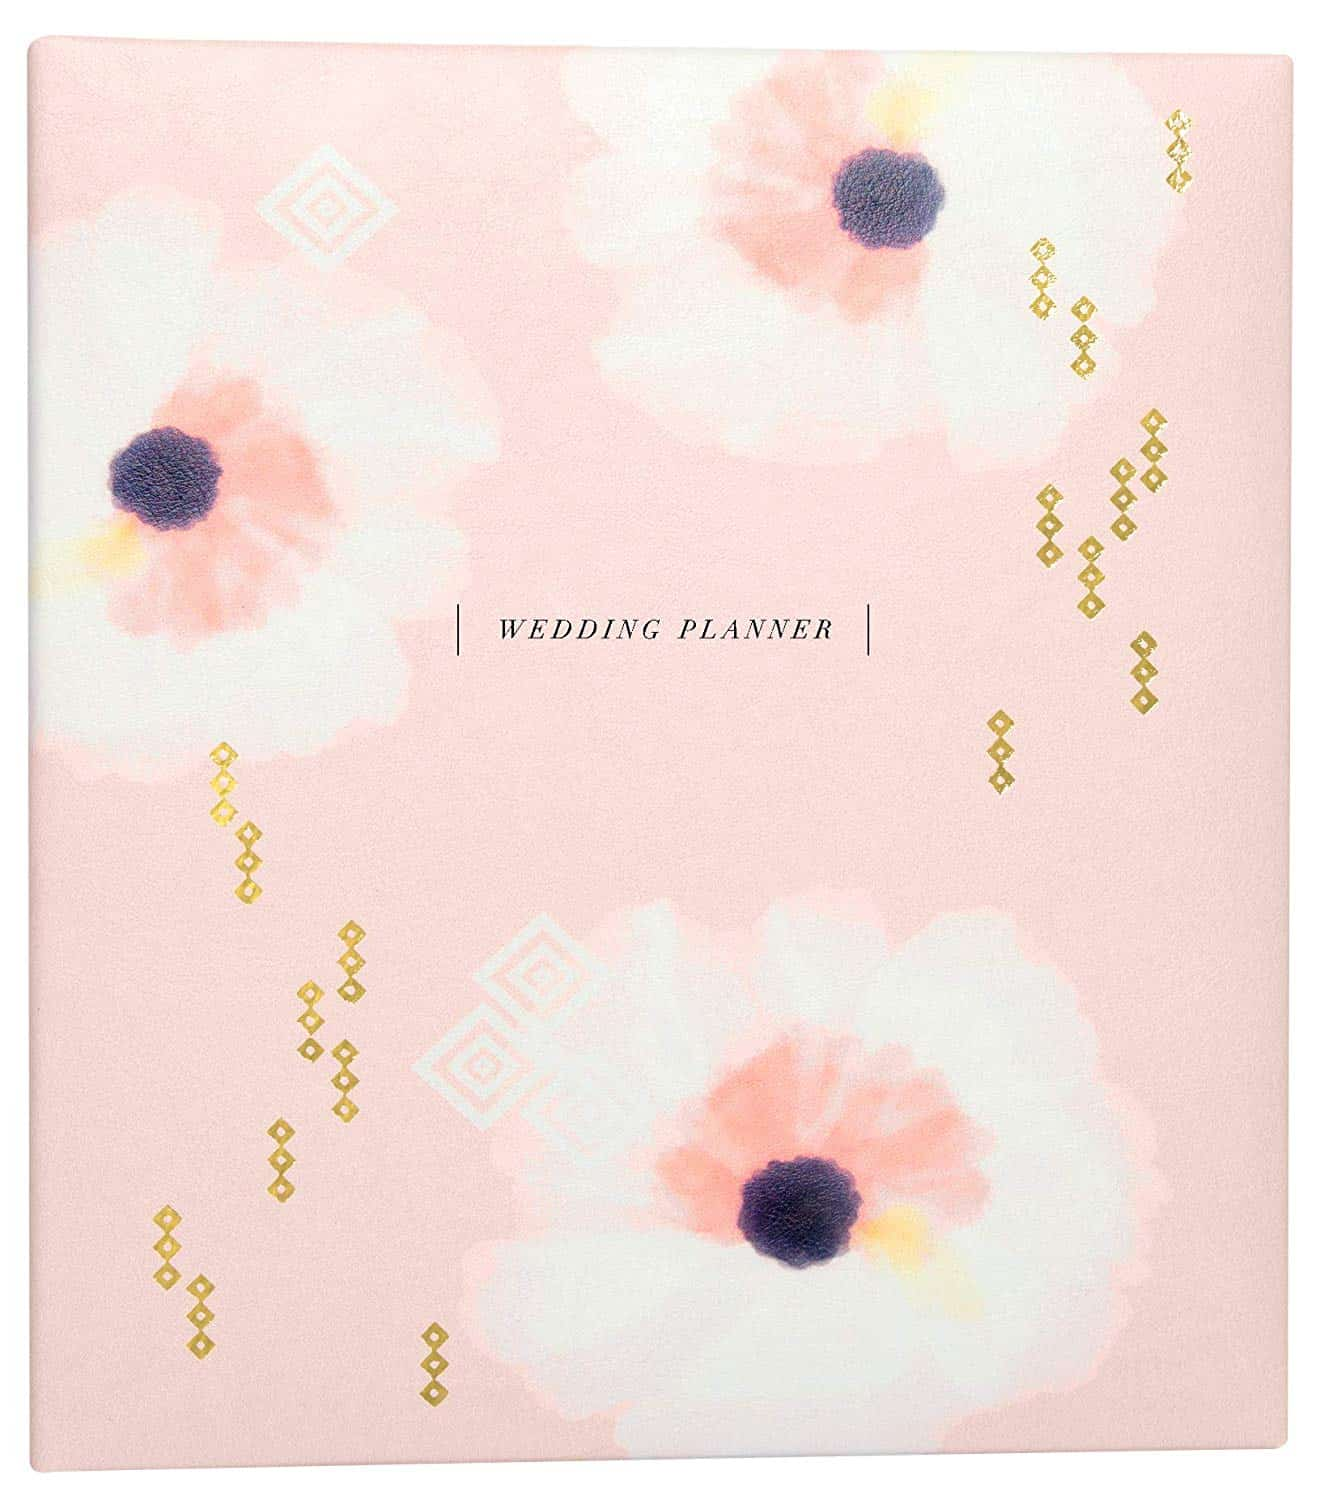 Engagement Gift Bridal Planner Complete Checklist Pink and White Wedding Planner Books and Binder Organizers for Brides